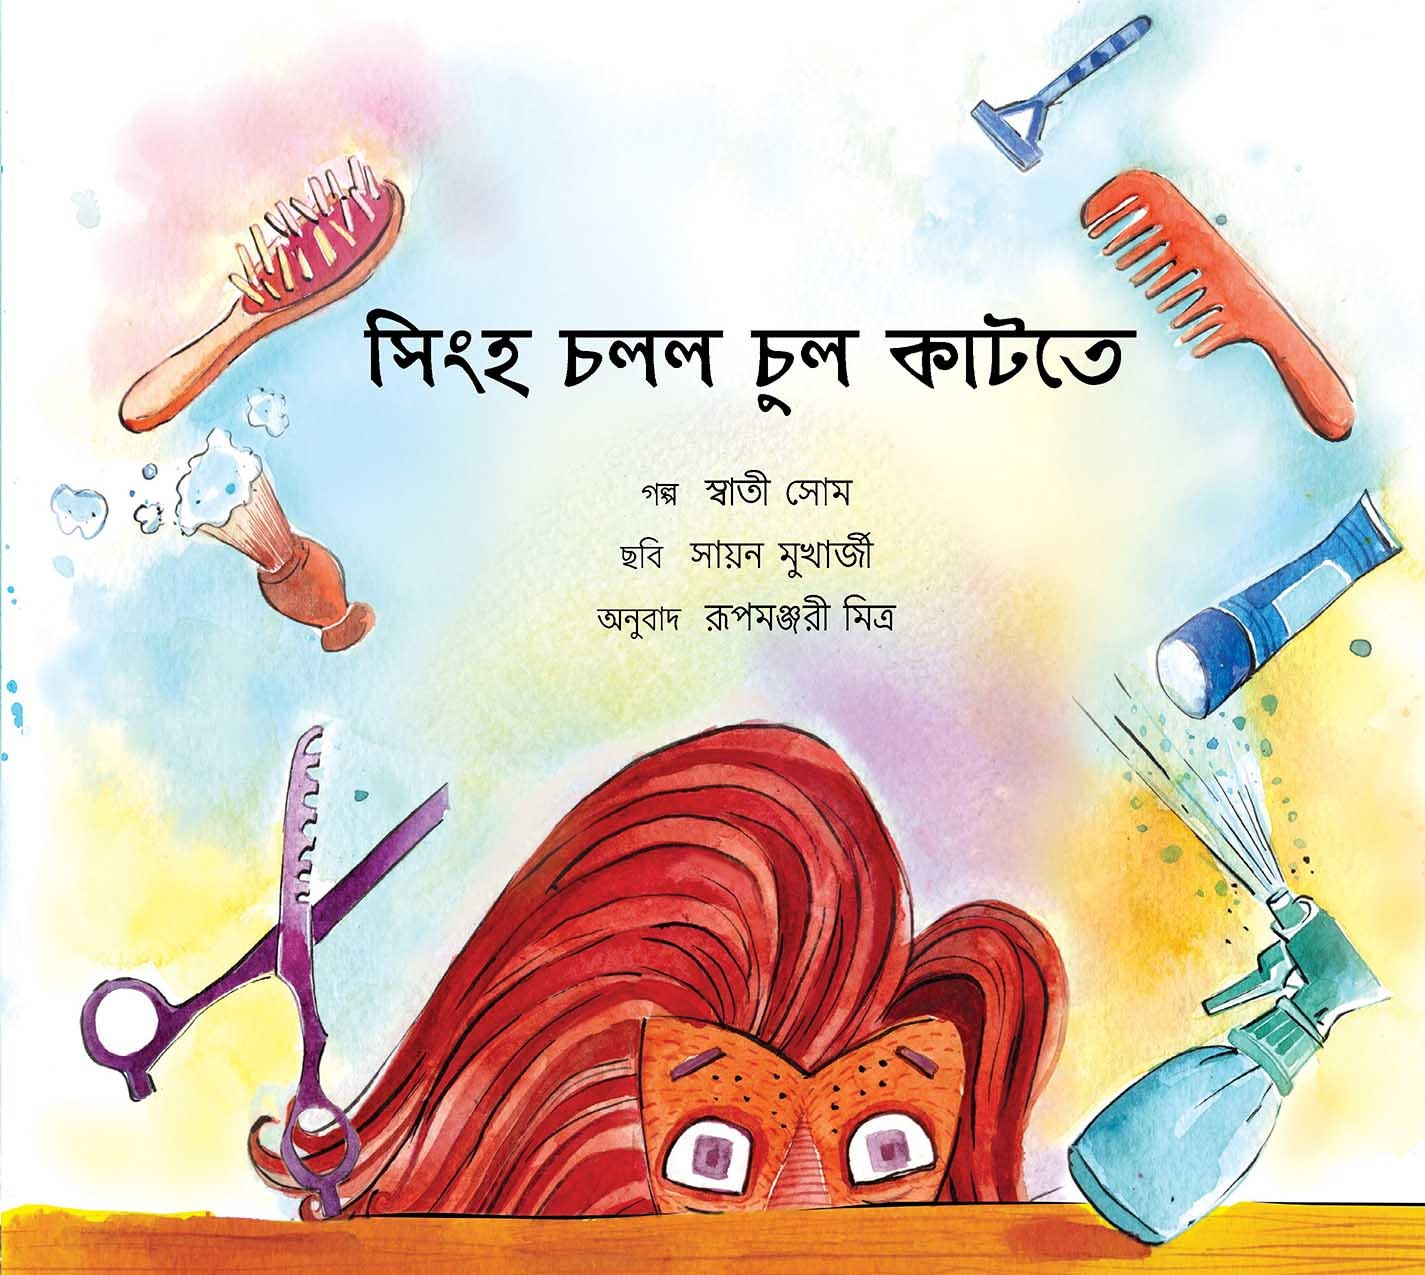 Lion Goes for a Haircut/Shingho Chollo Chool Katthey (Bengali)